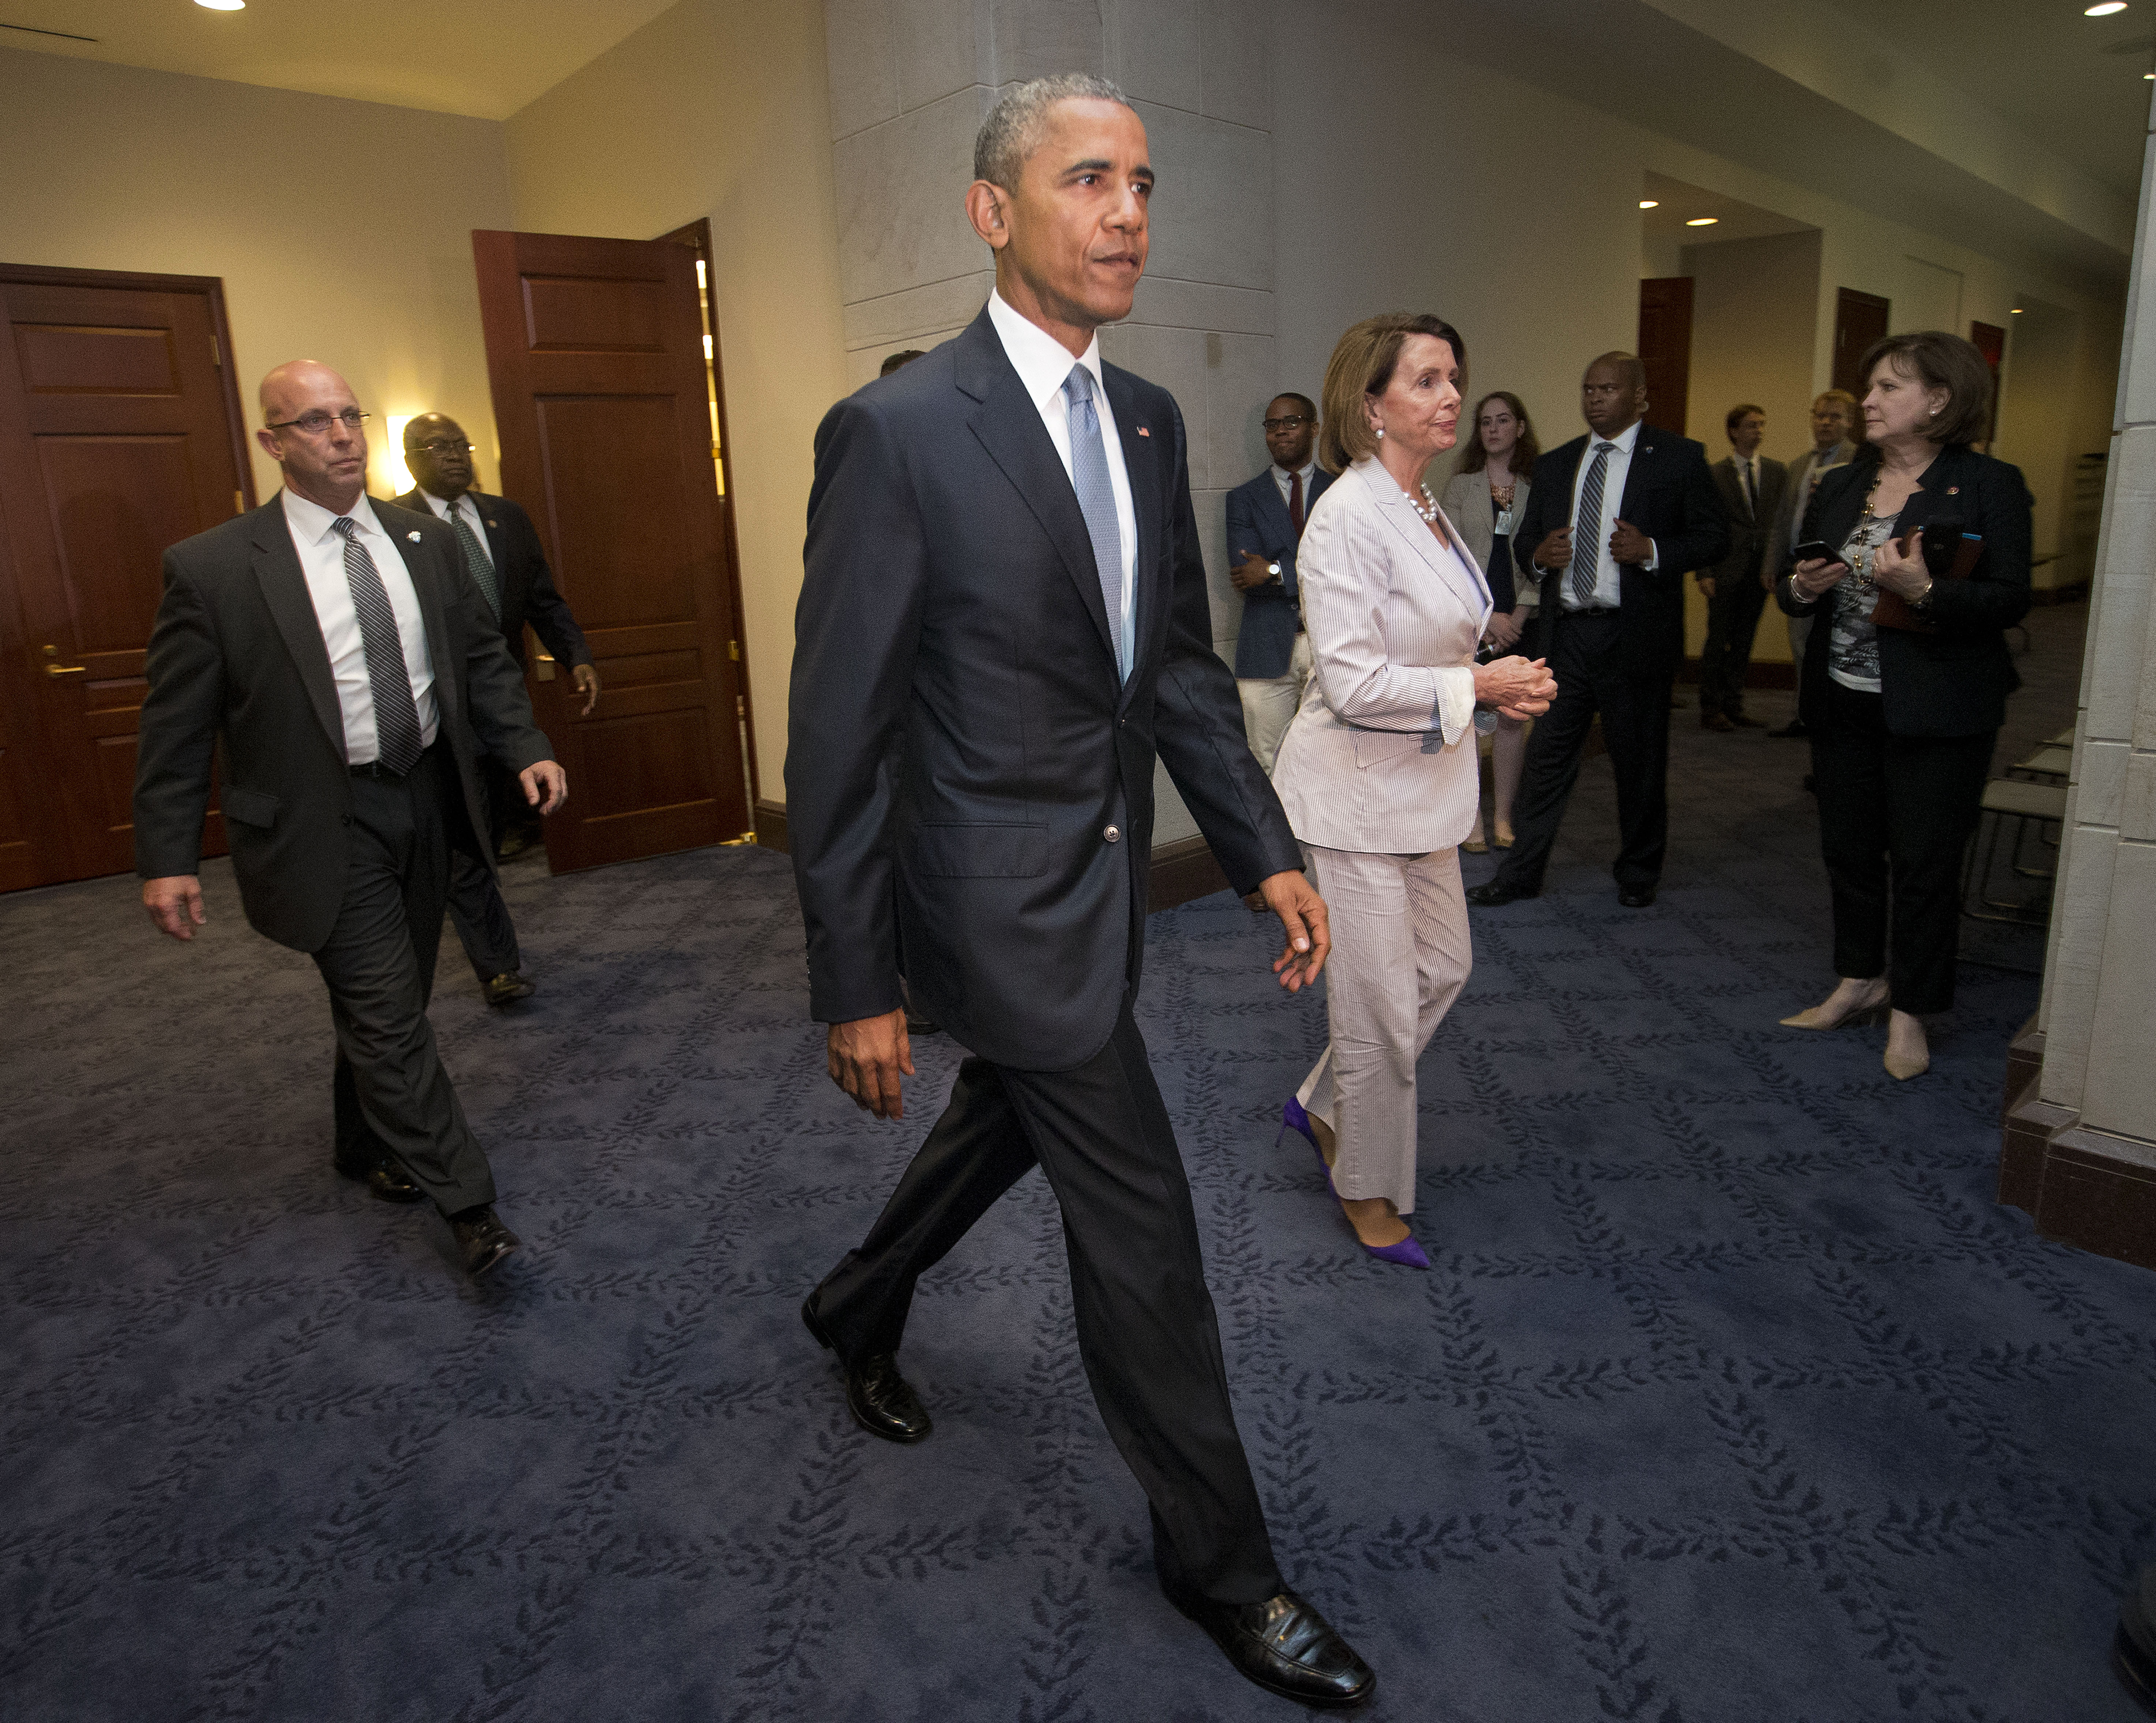 Obama Loses Trade Battle With Congress The Spokesman Review